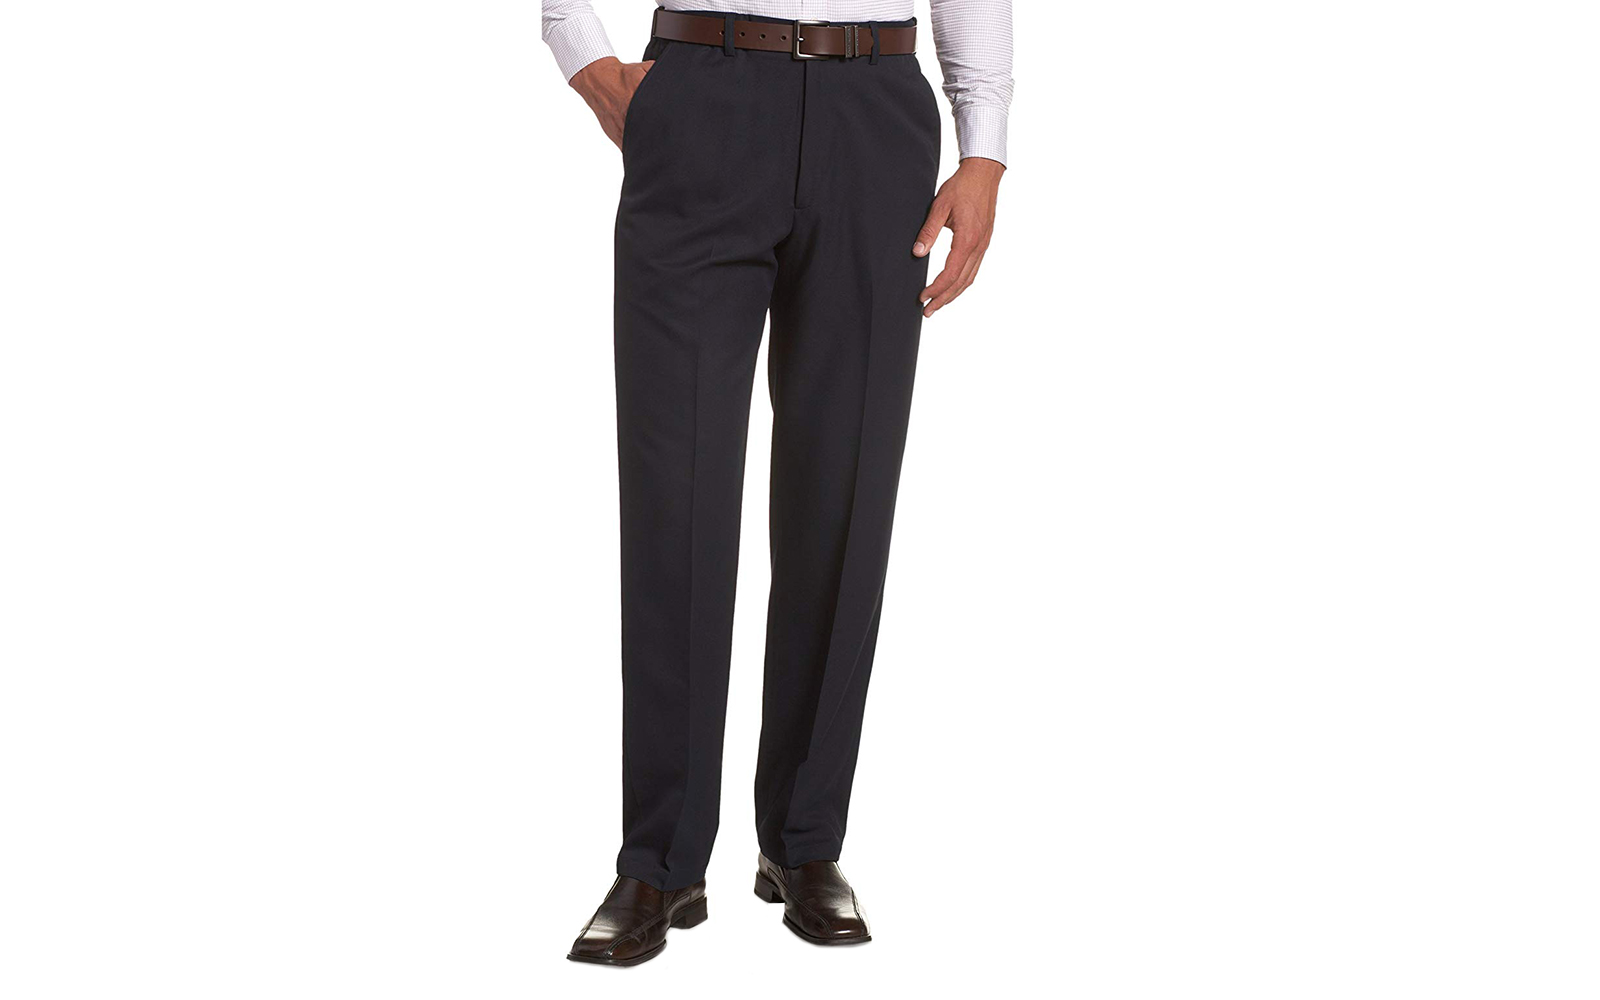 These wrinkle-free pants have thousands of five-star reviews — and they're perfect for bus